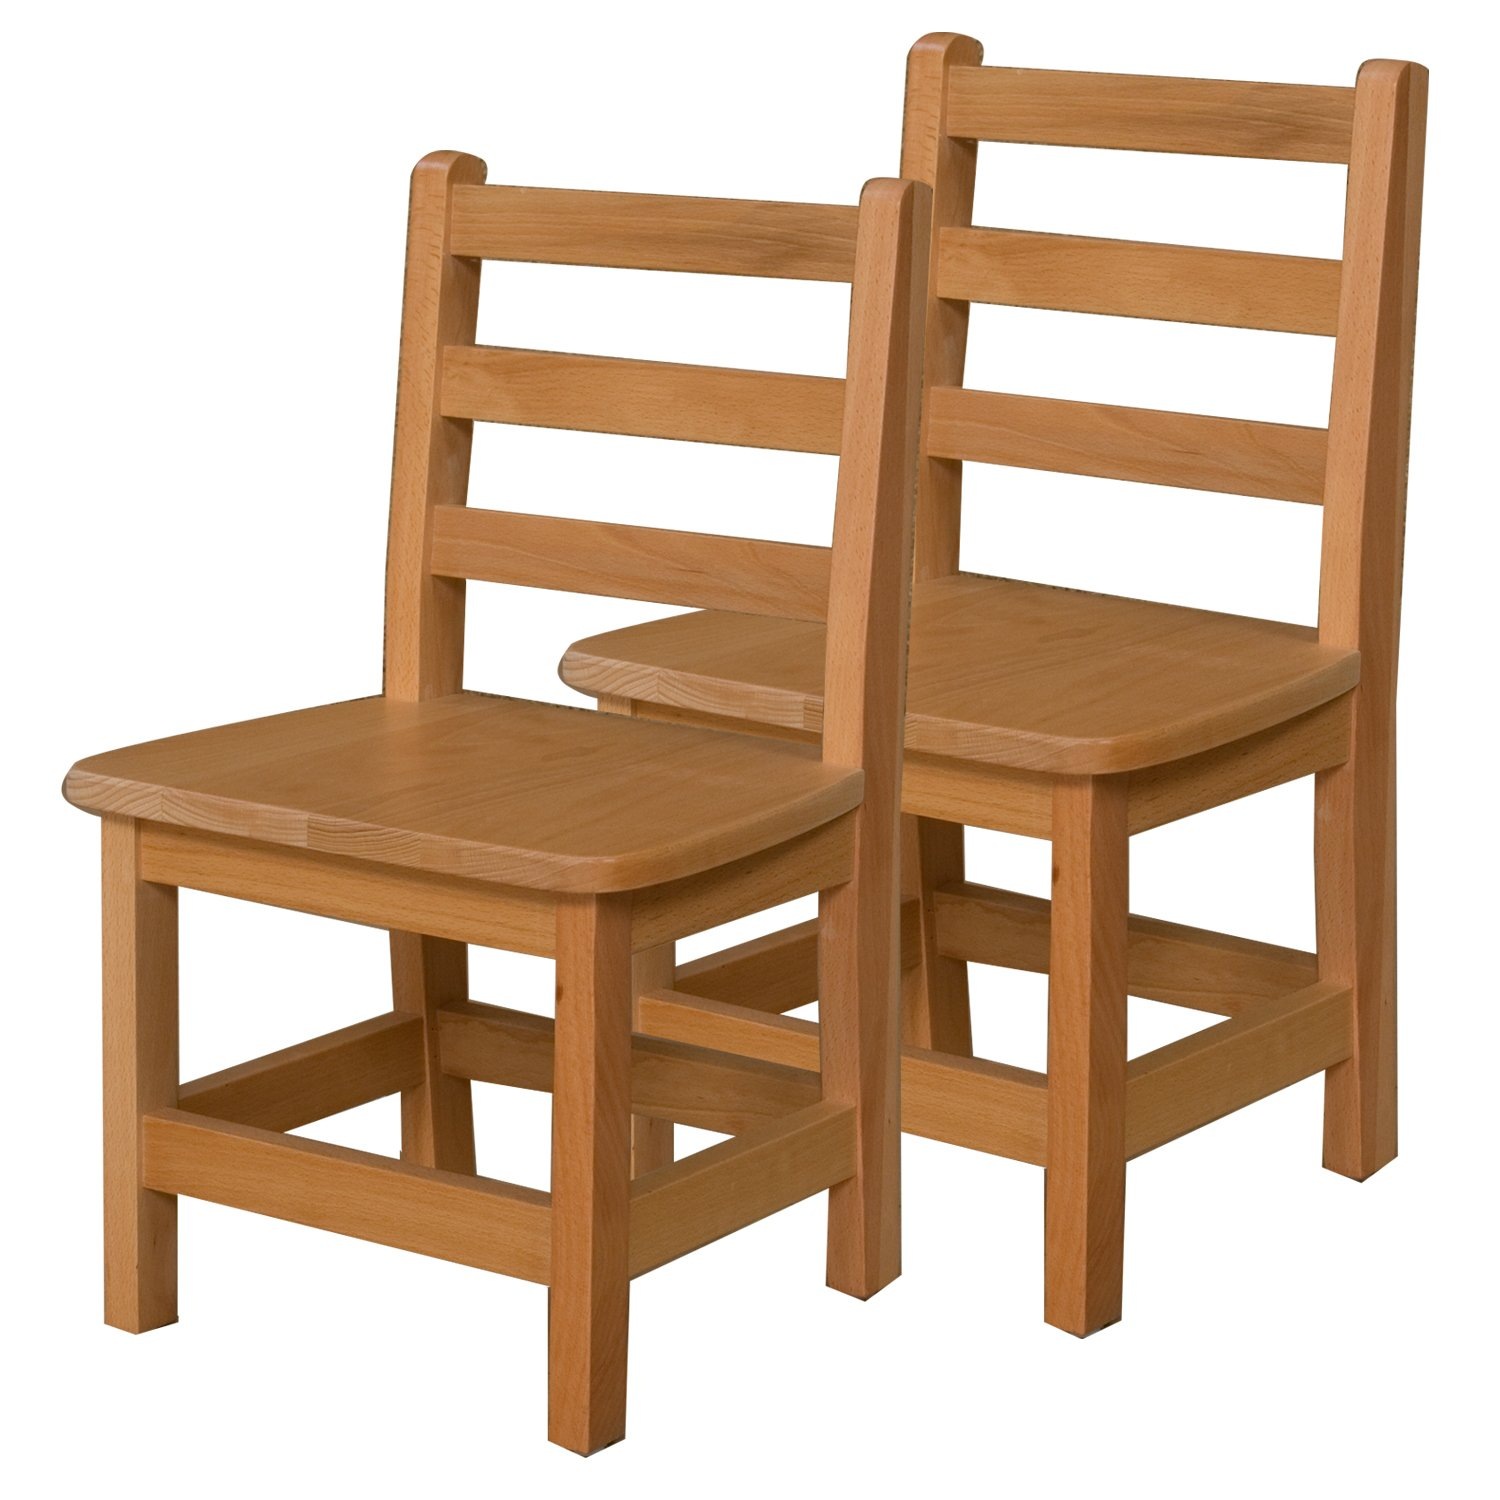 Wood Designs WD81202 12'' Chair, (Carton of 2)